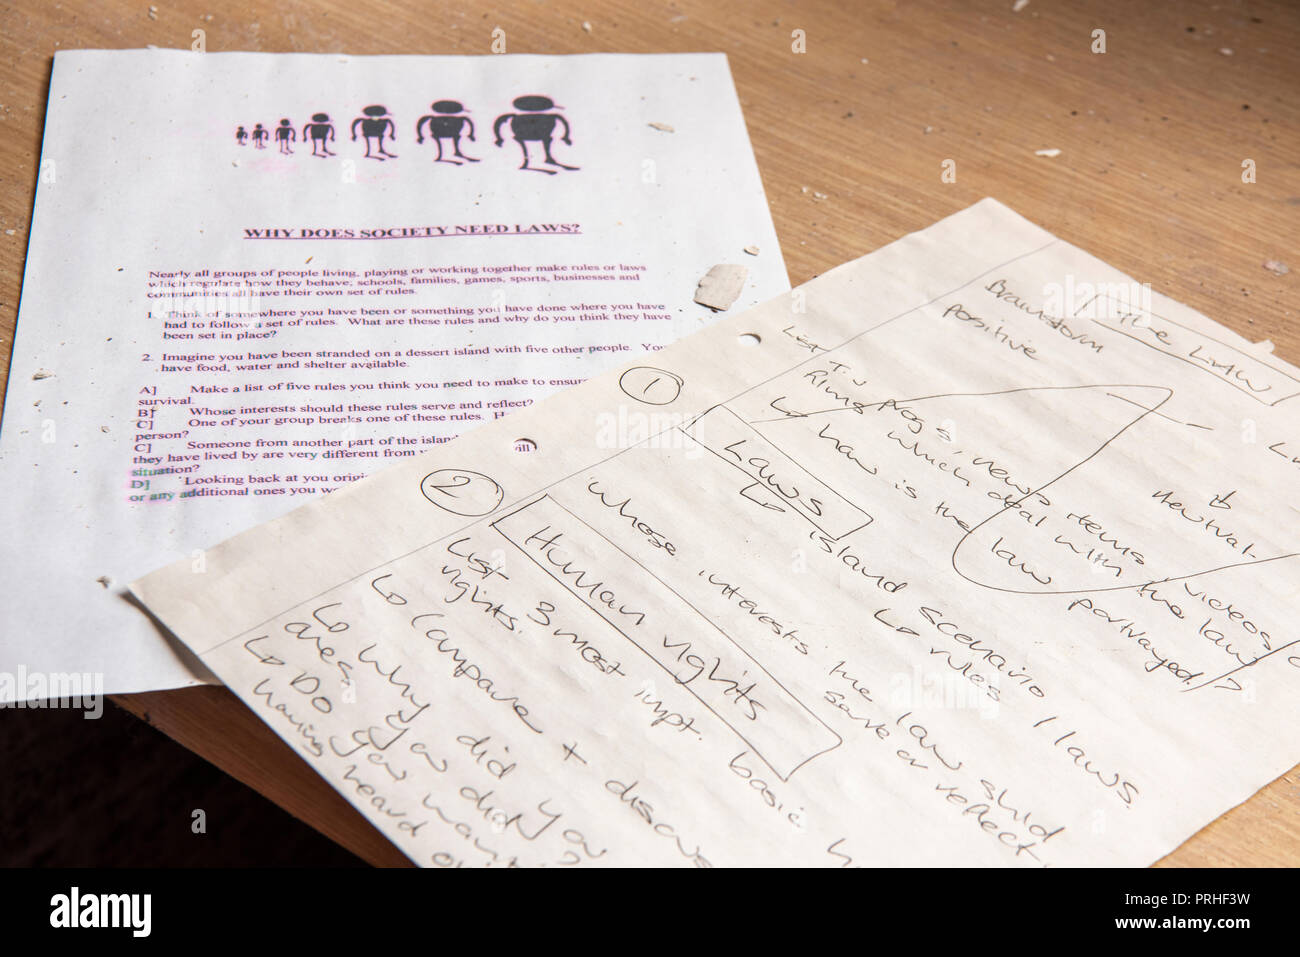 Teaching notes for a lesson on law and order, human rights and morality inside the classroom of a juvenile detention centre. - Stock Image